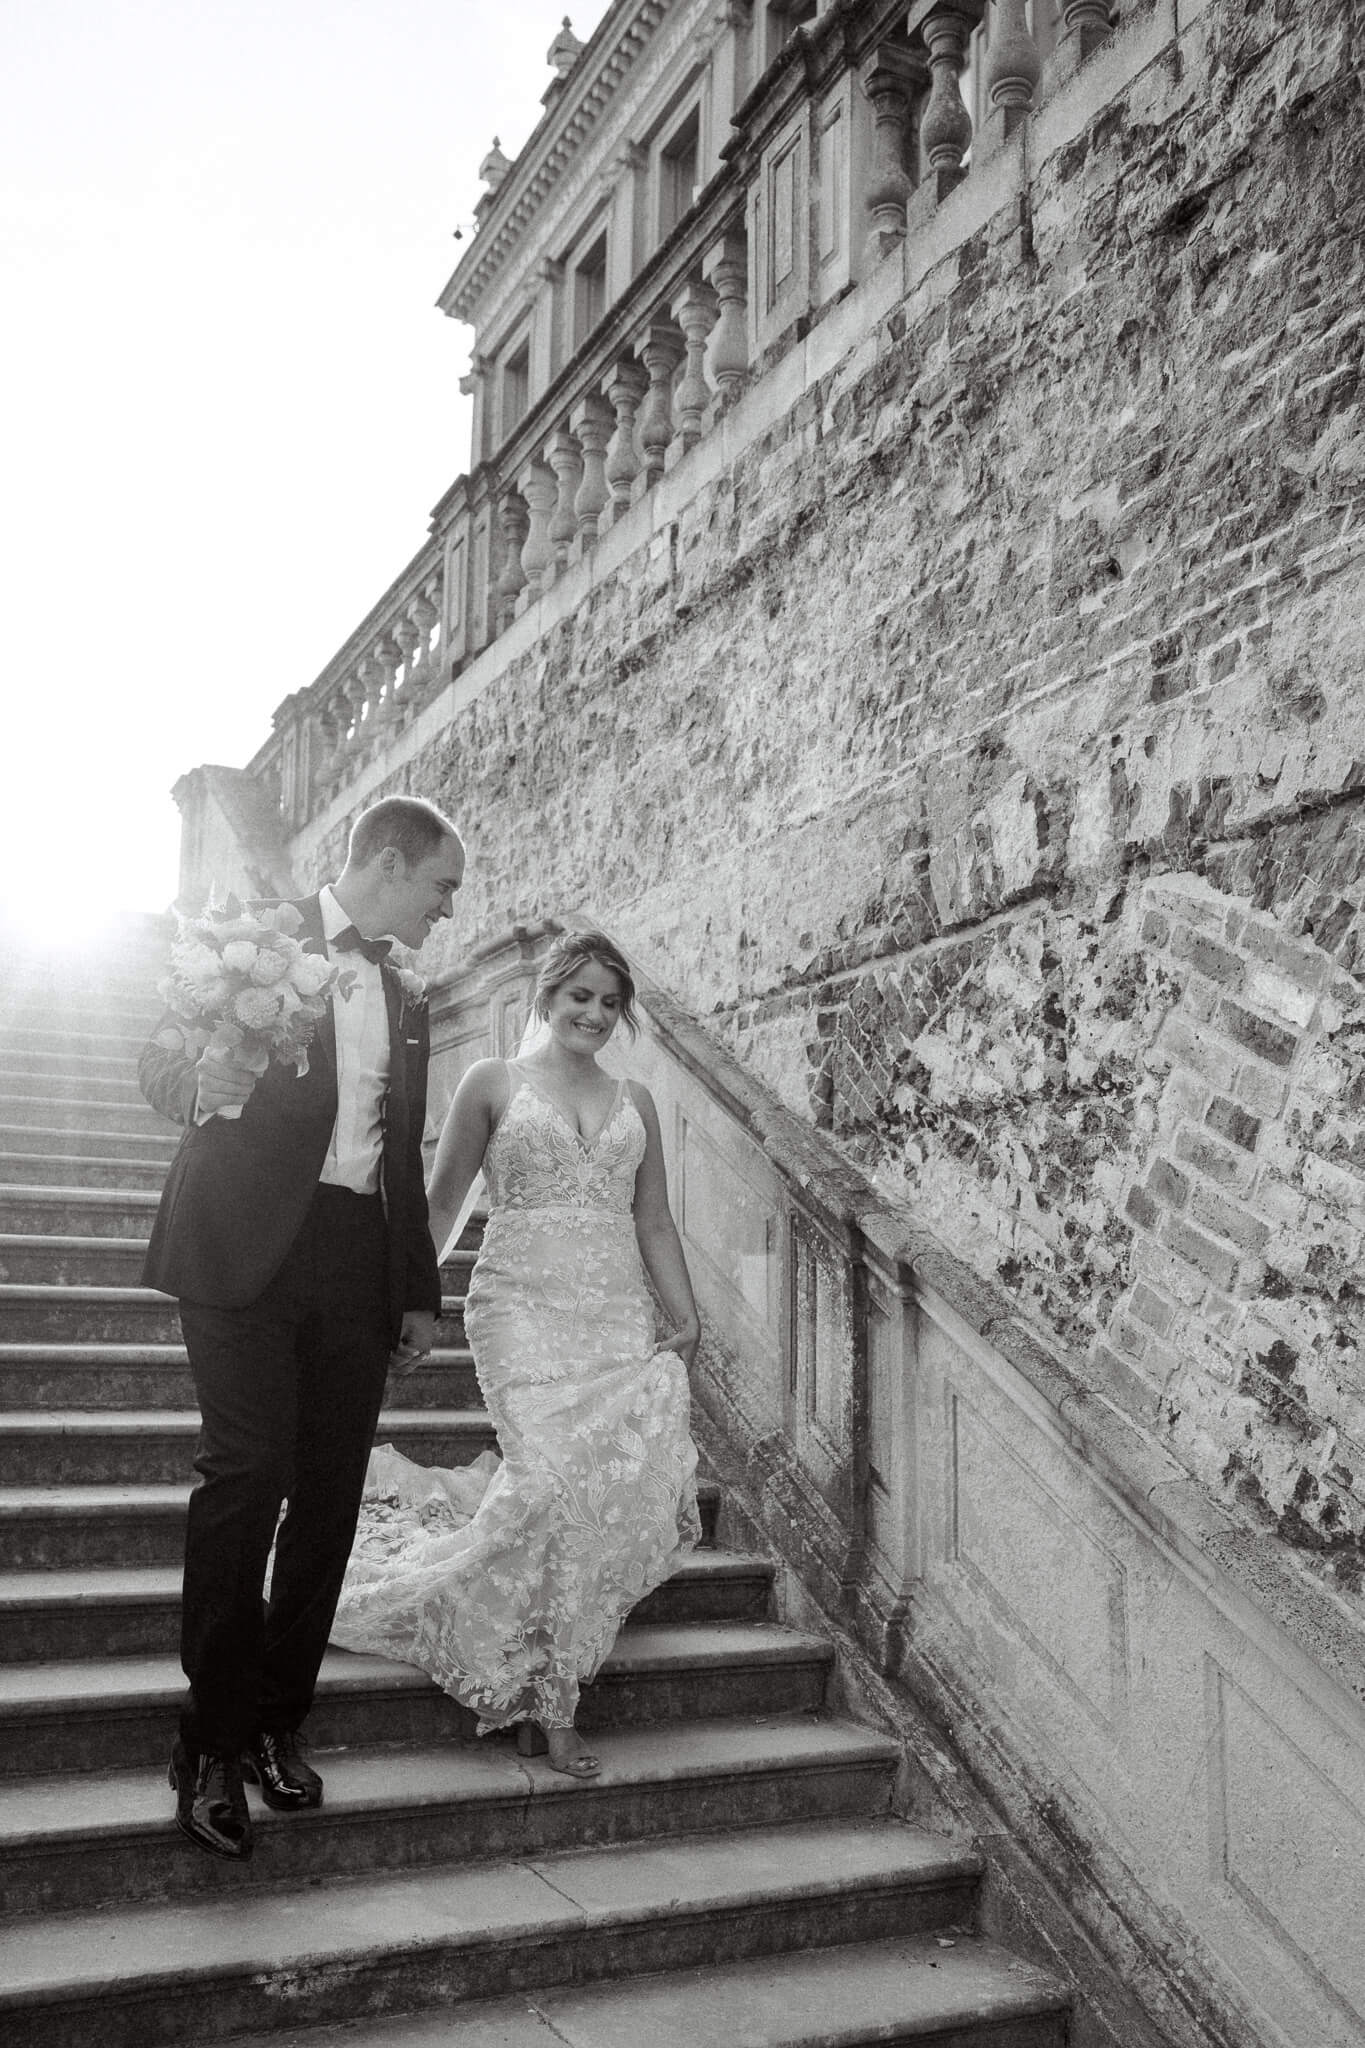 couple walking down stairs |Wedding photography